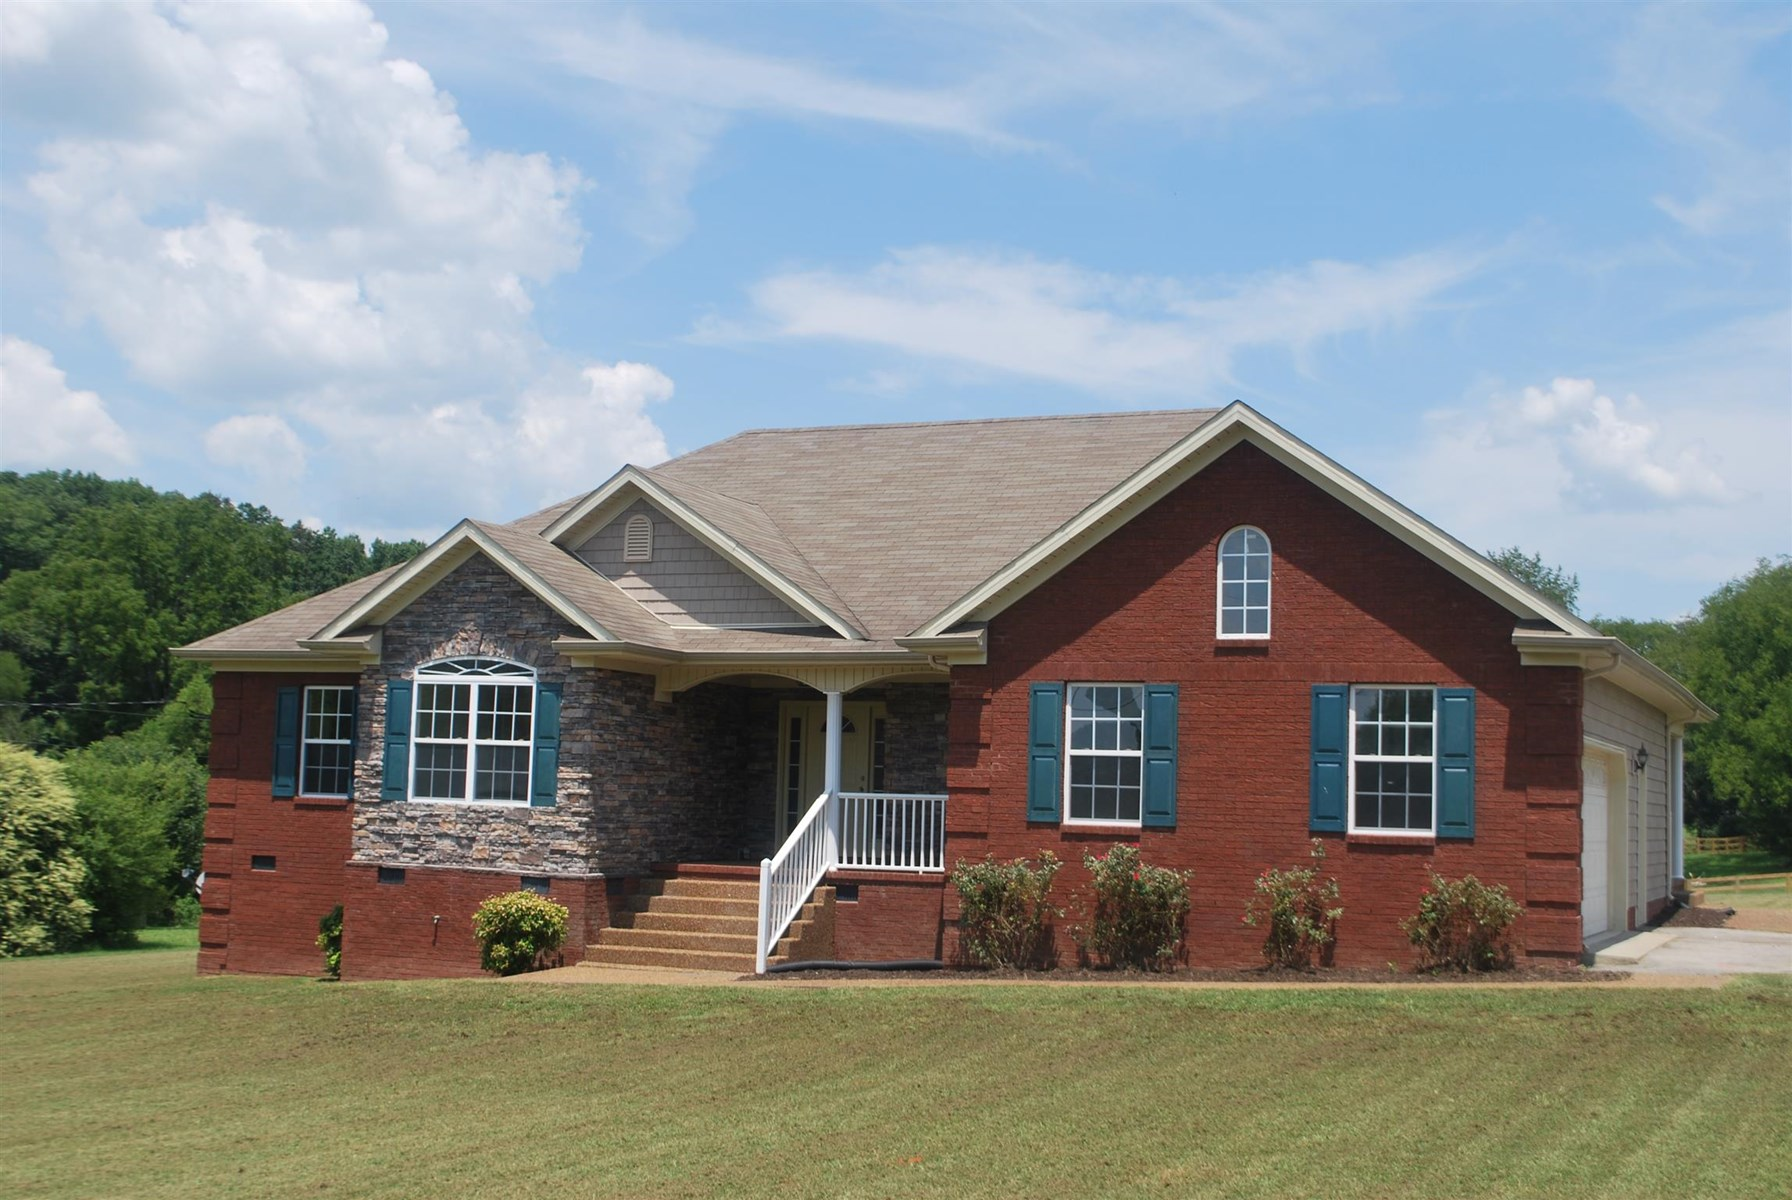 Country Living on 1 Acre Lot, Columbia, Tennessee